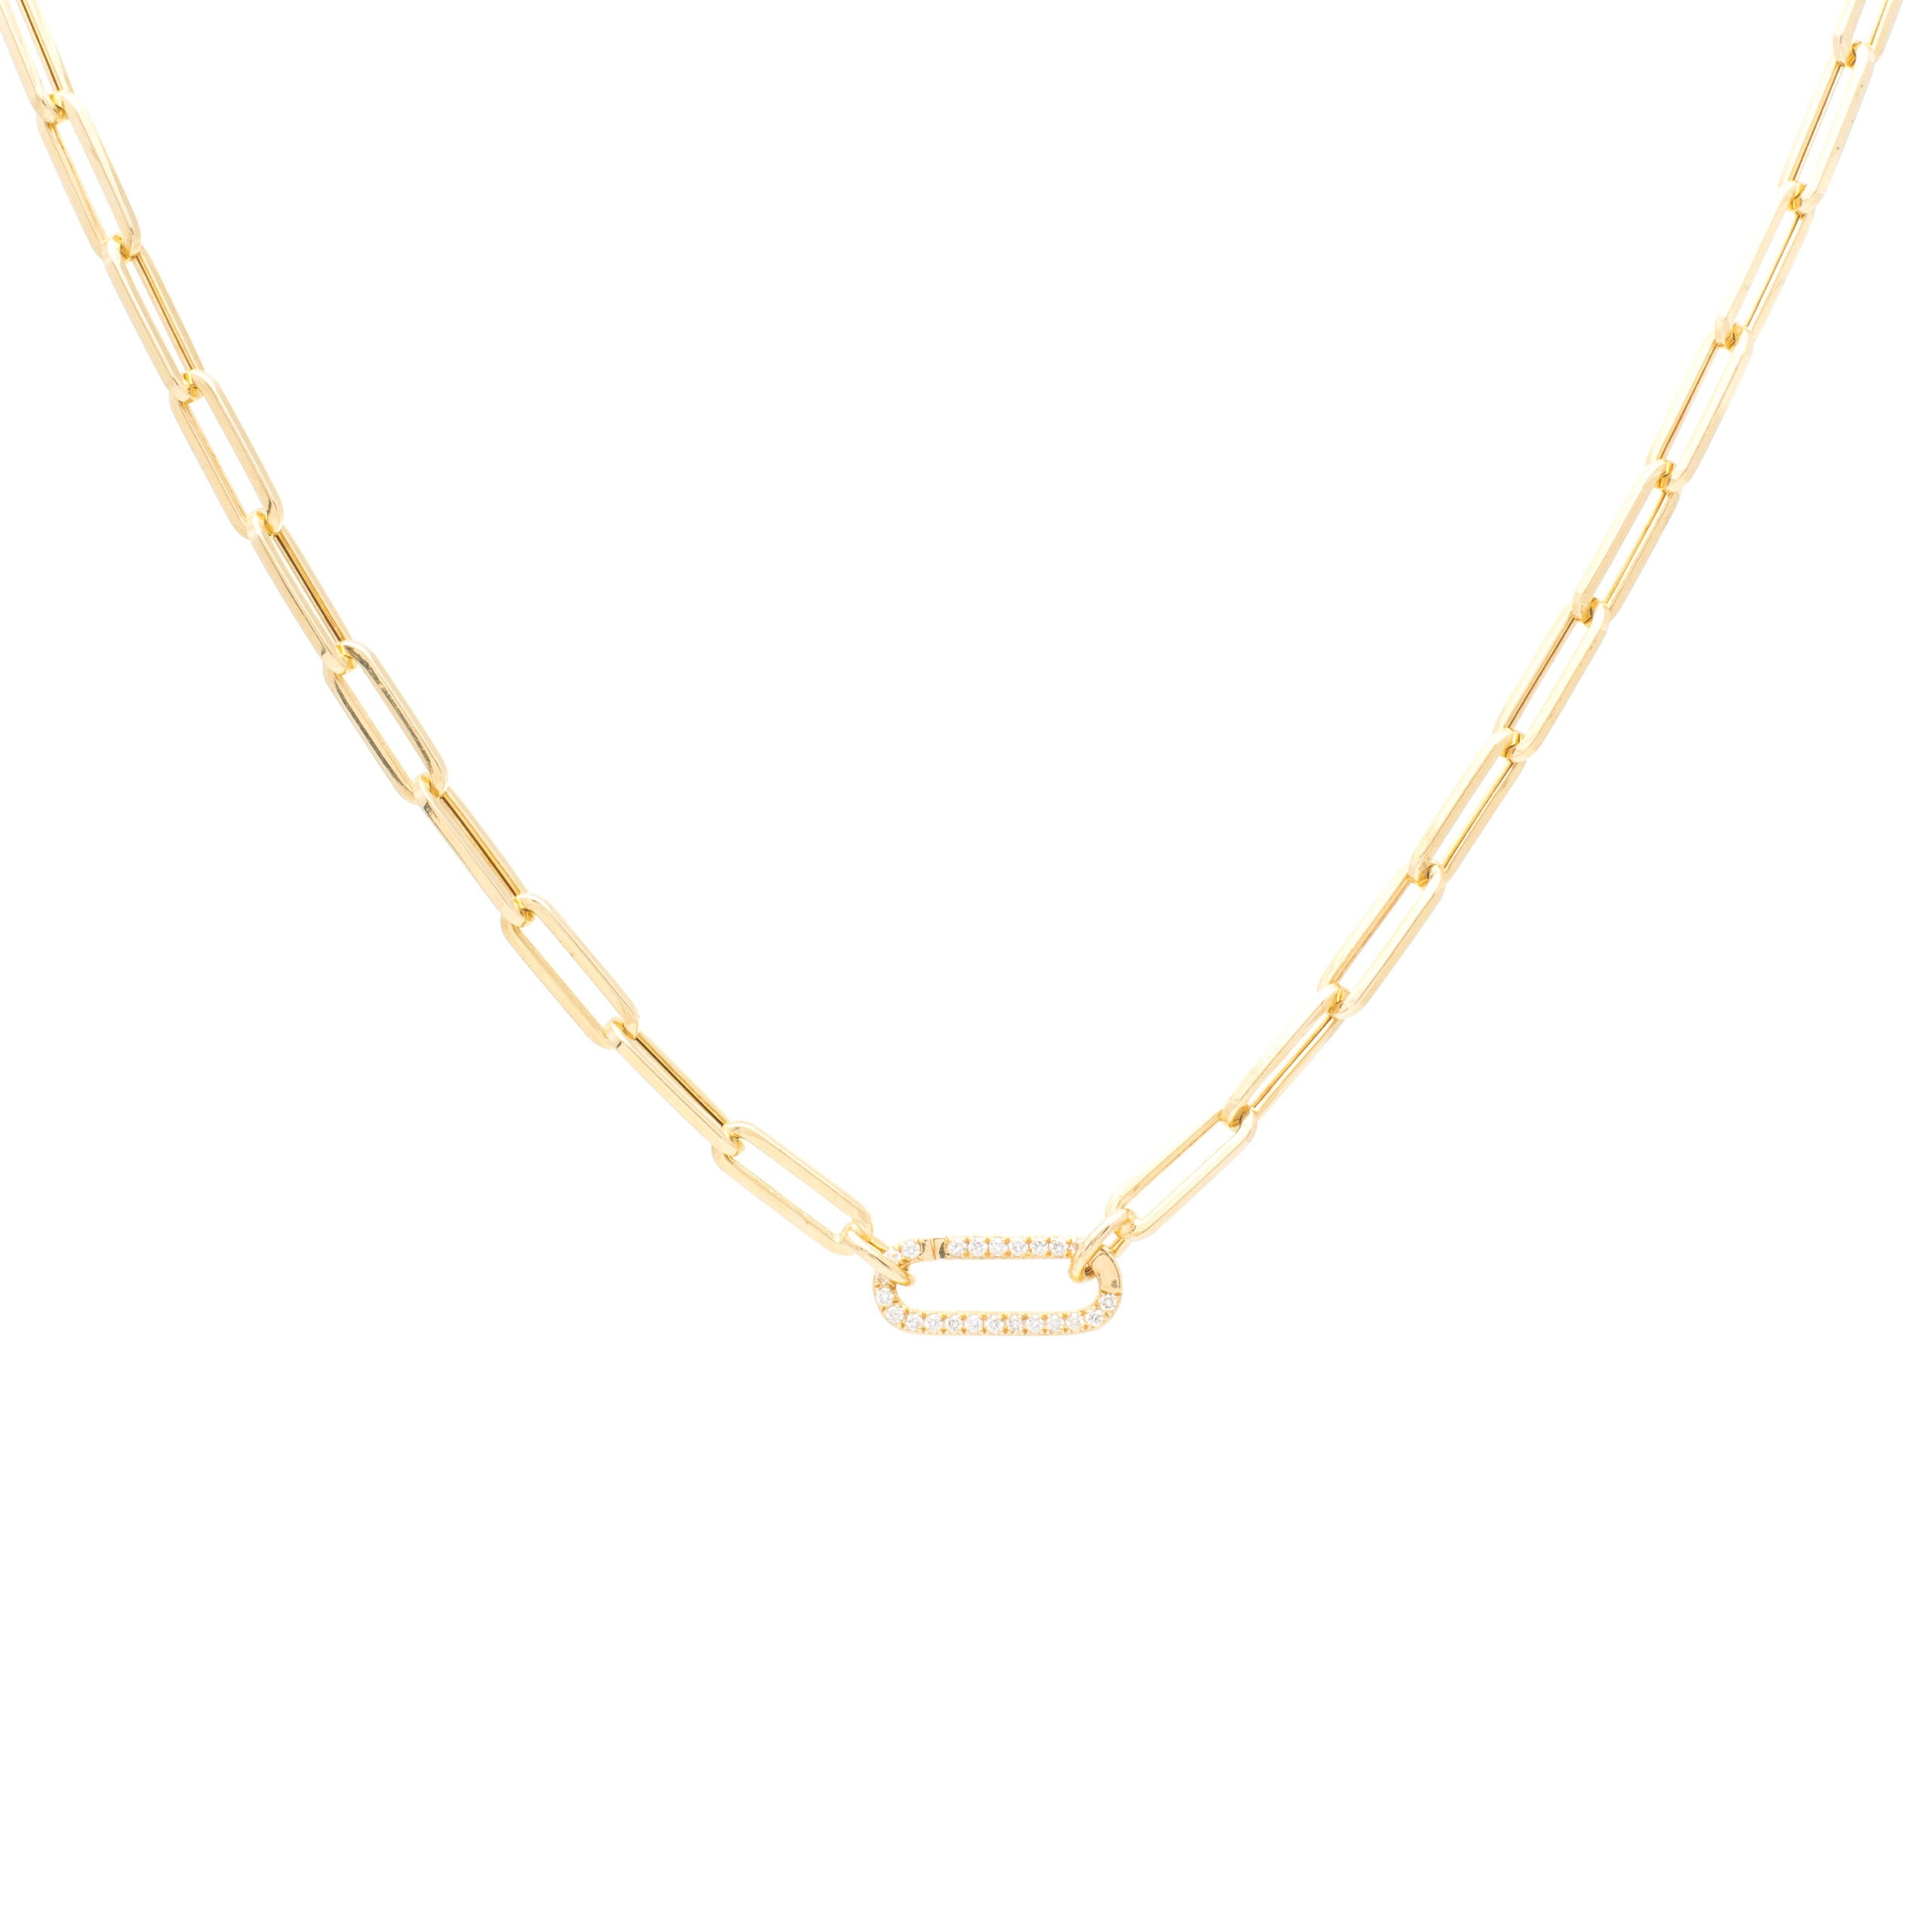 Small Chain Link Necklace + Mini Pave Diamond Gold Link Connector Clasp Yellow Gold